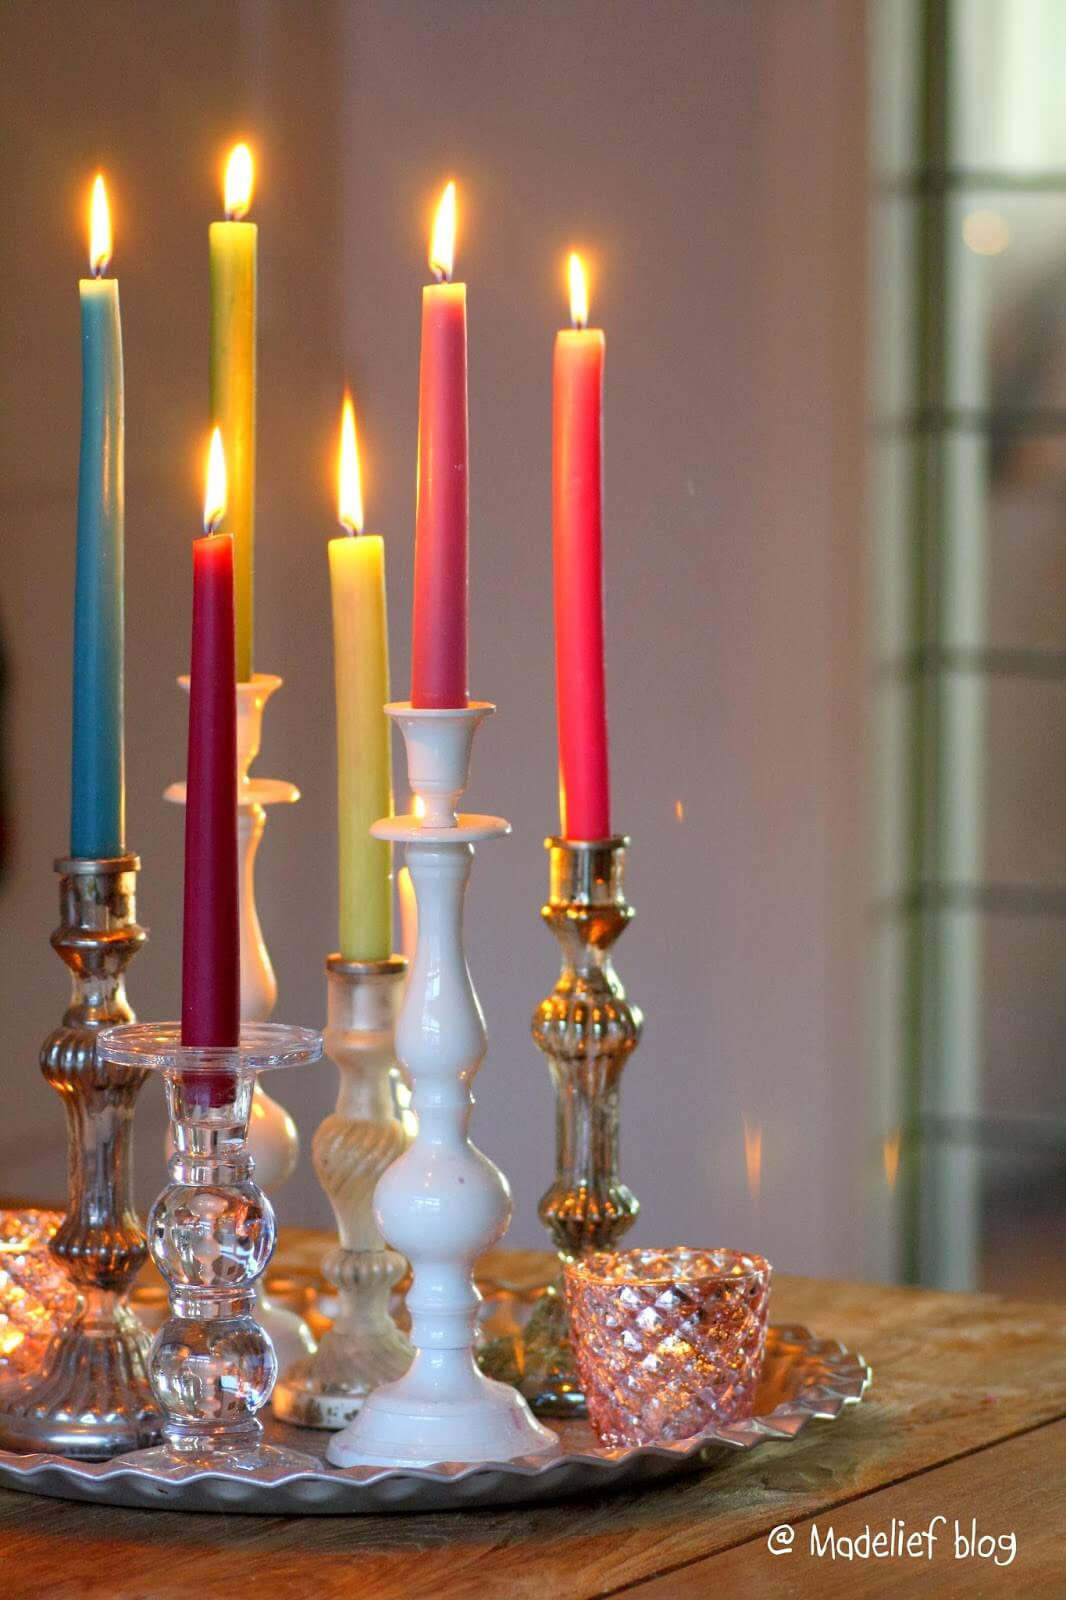 Vintage Holders, Festive Tapers Candles